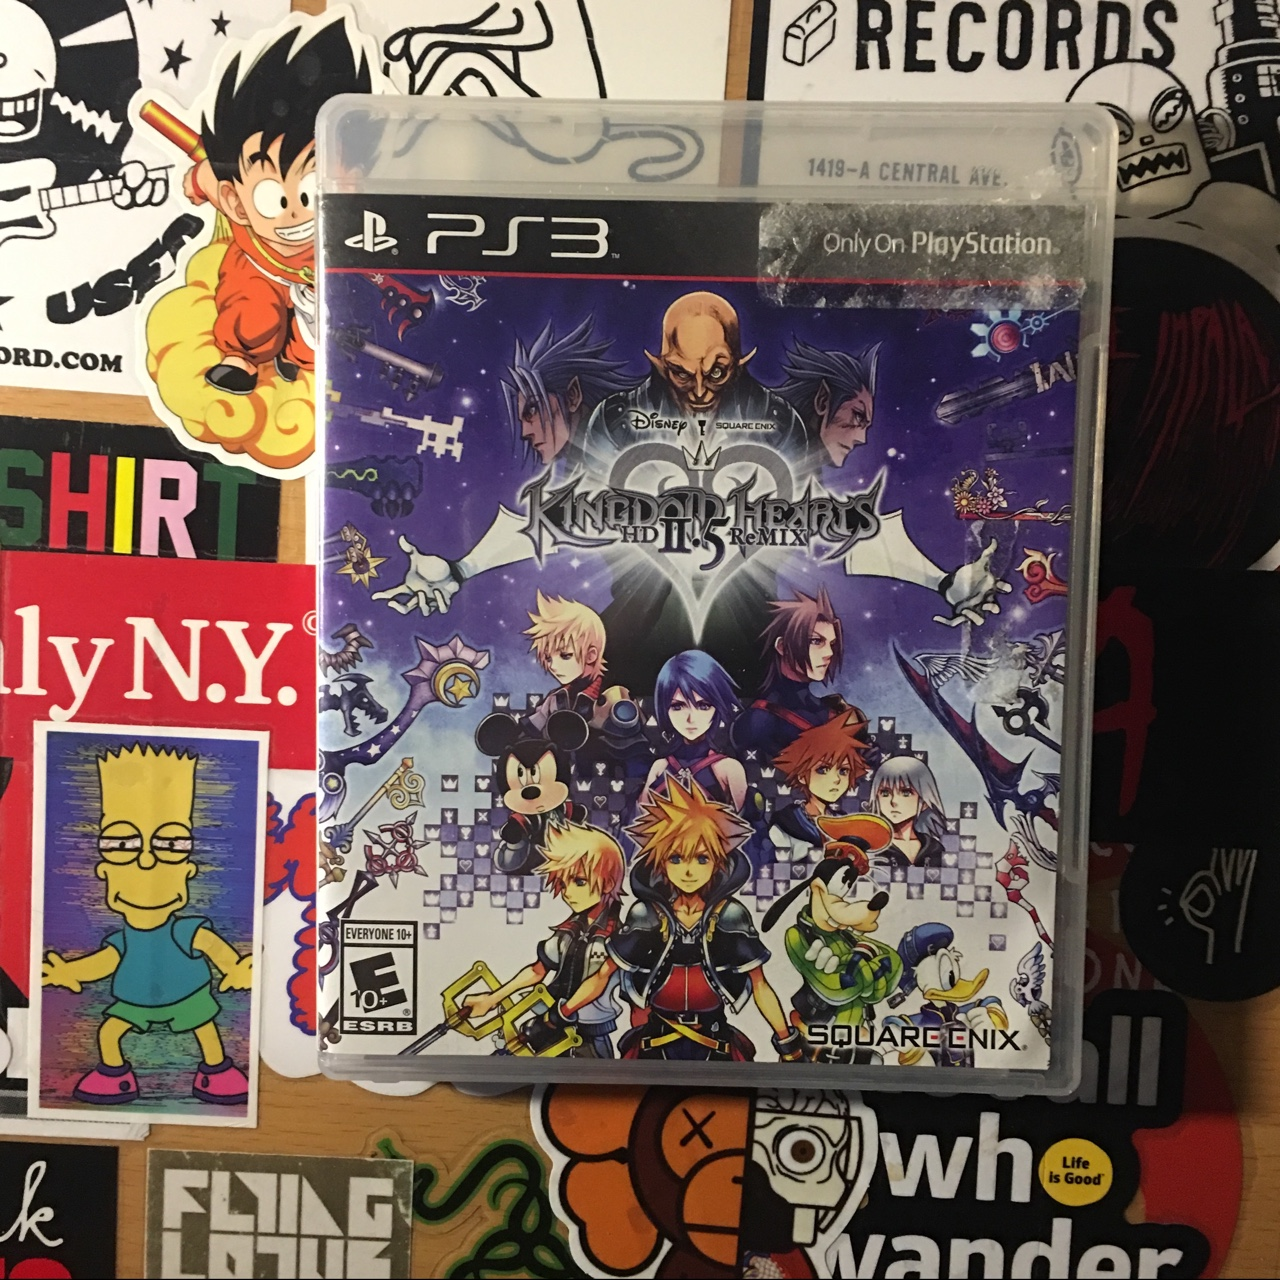 Kingdom hearts HD 2 5 remix for PS3 great condition    - Depop